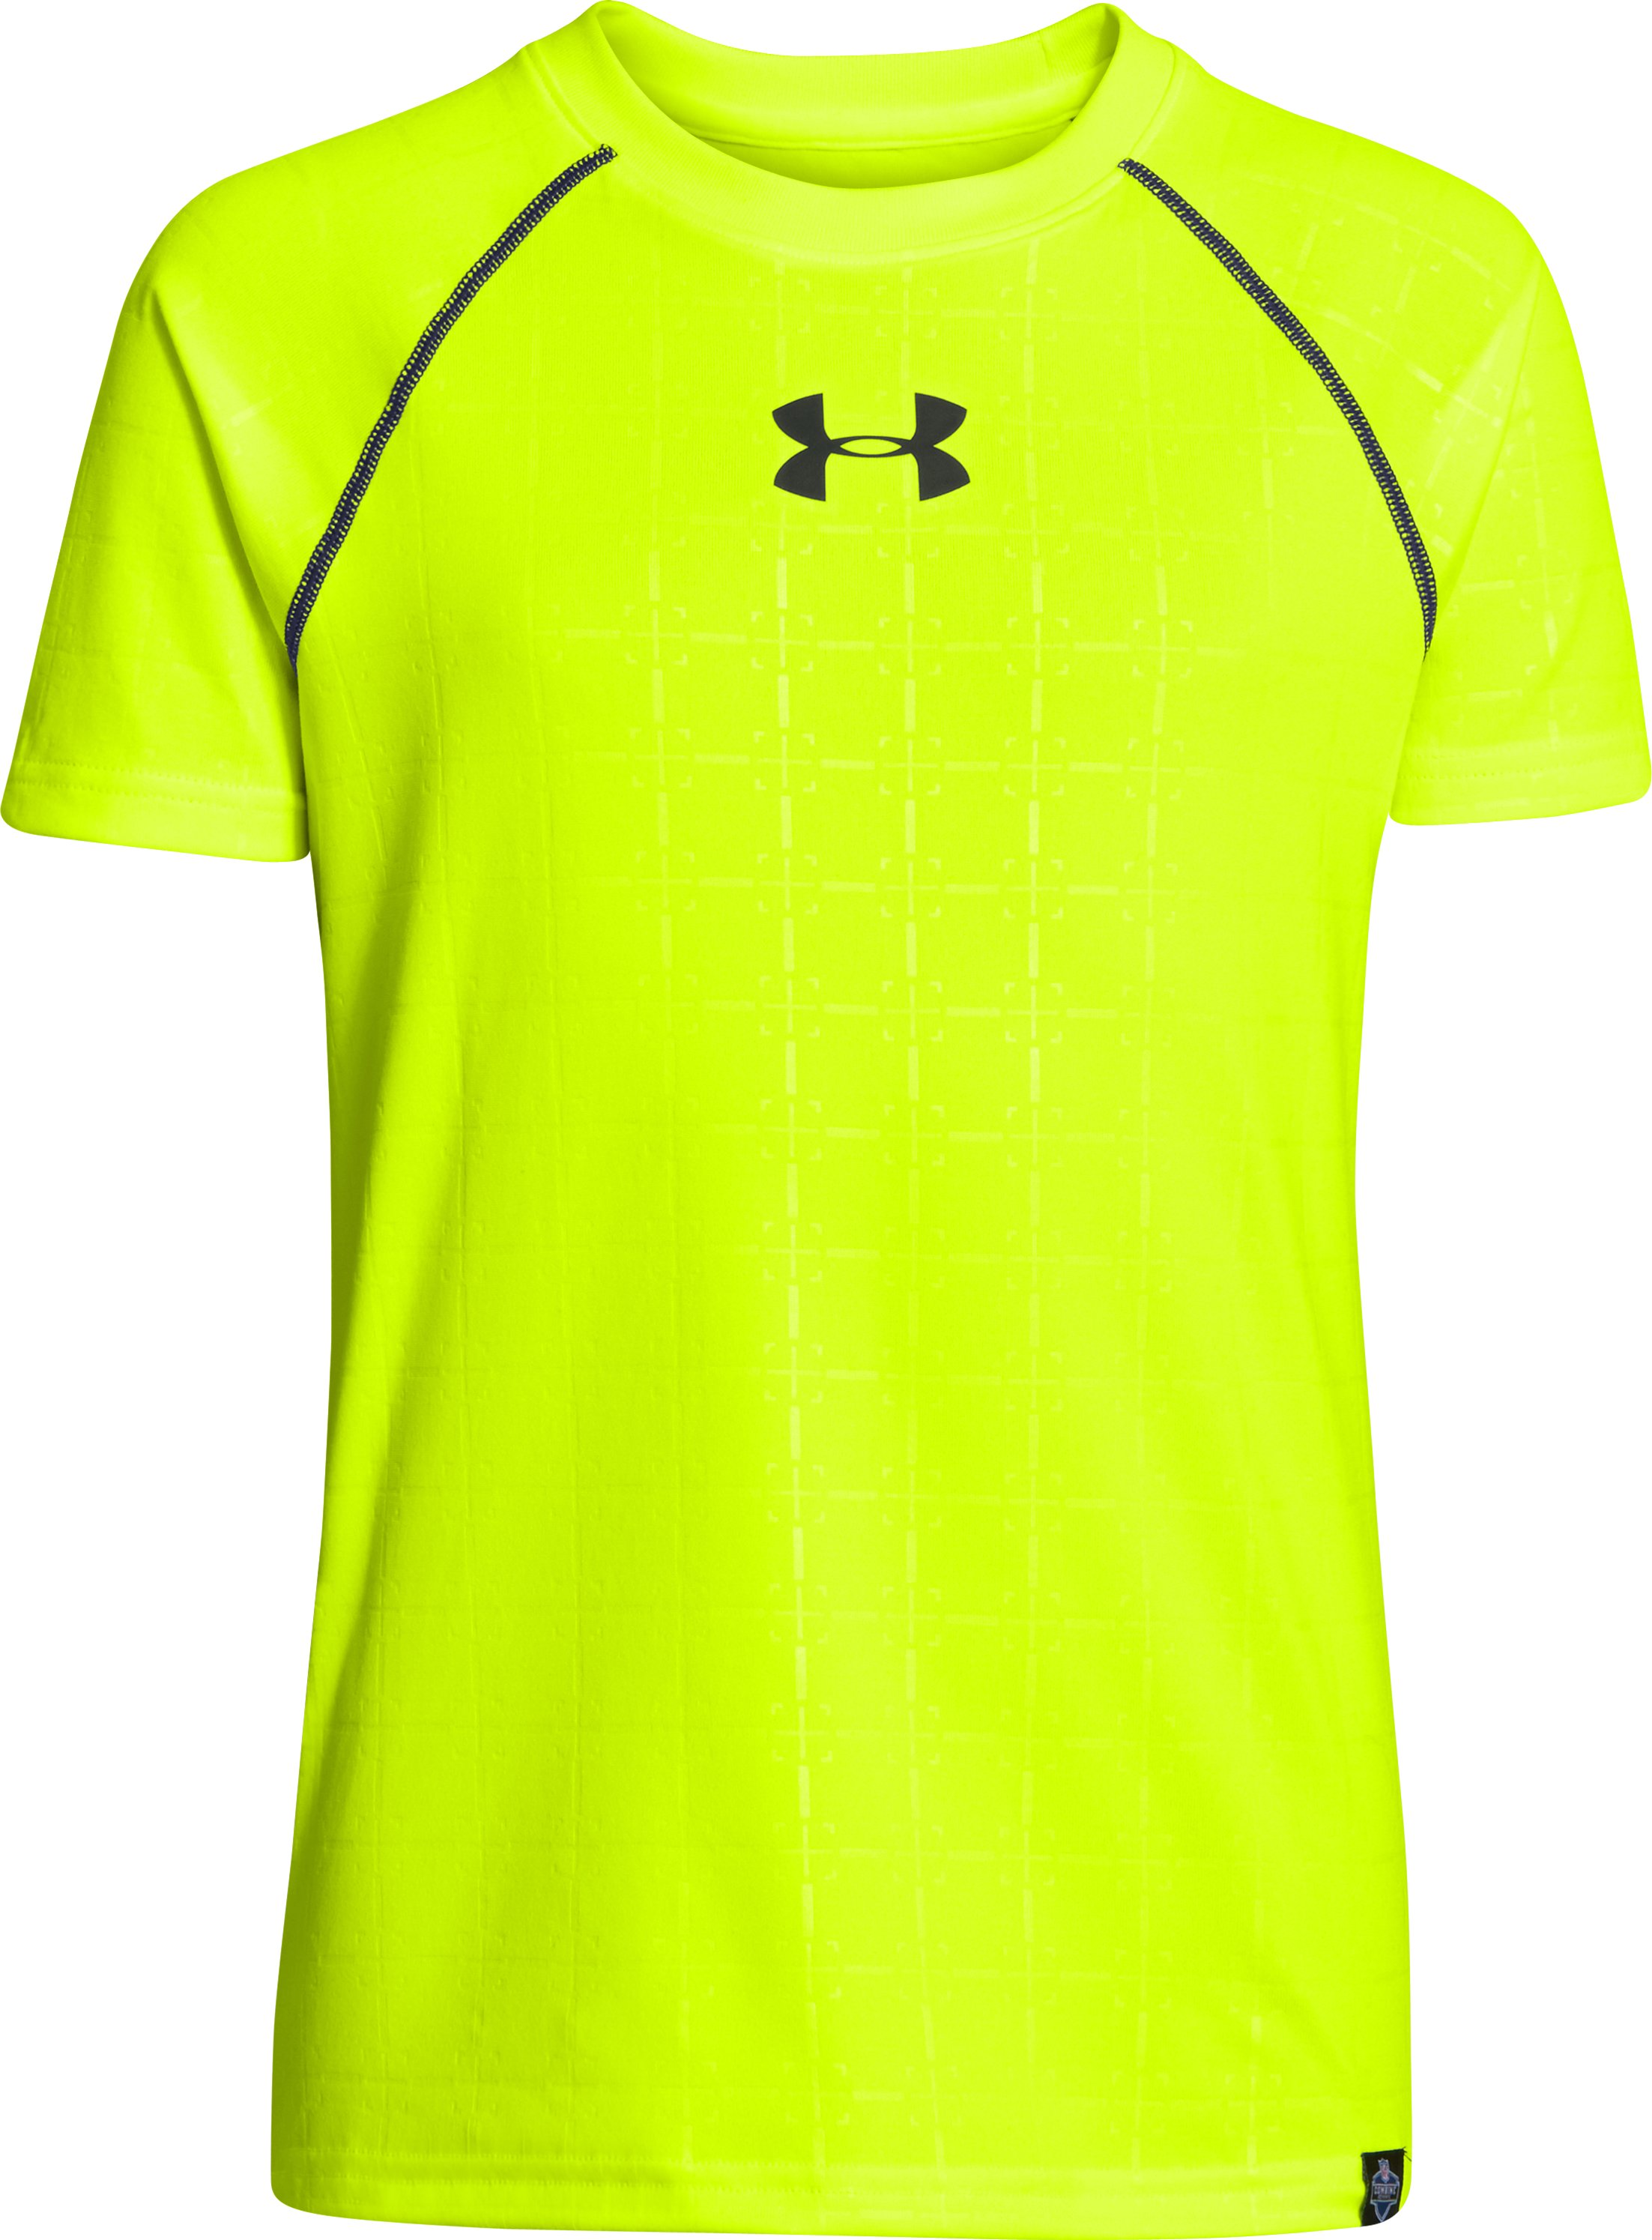 Boys' NFL Combine Authentic Training T-Shirt, High-Vis Yellow, zoomed image